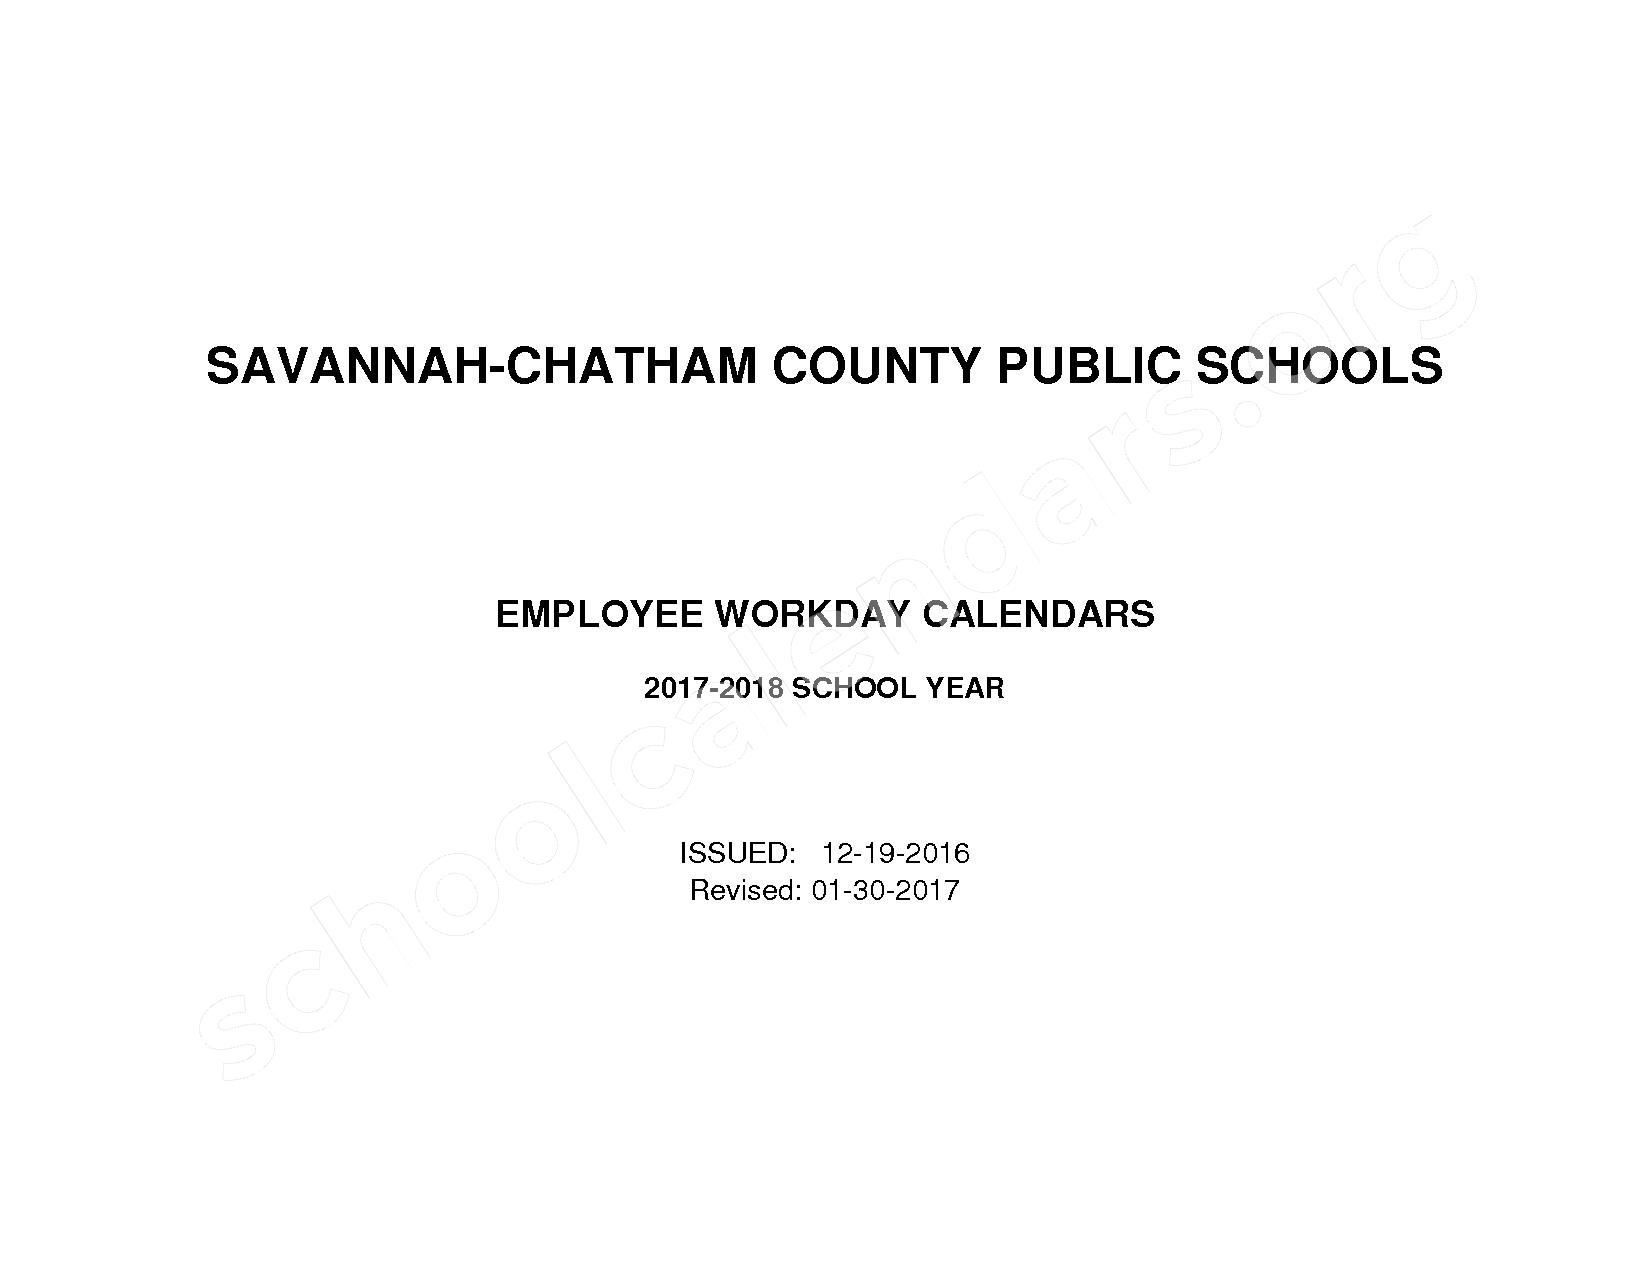 2017 - 2018 Employee Workday Calendar – Shuman Elementary School – page 1